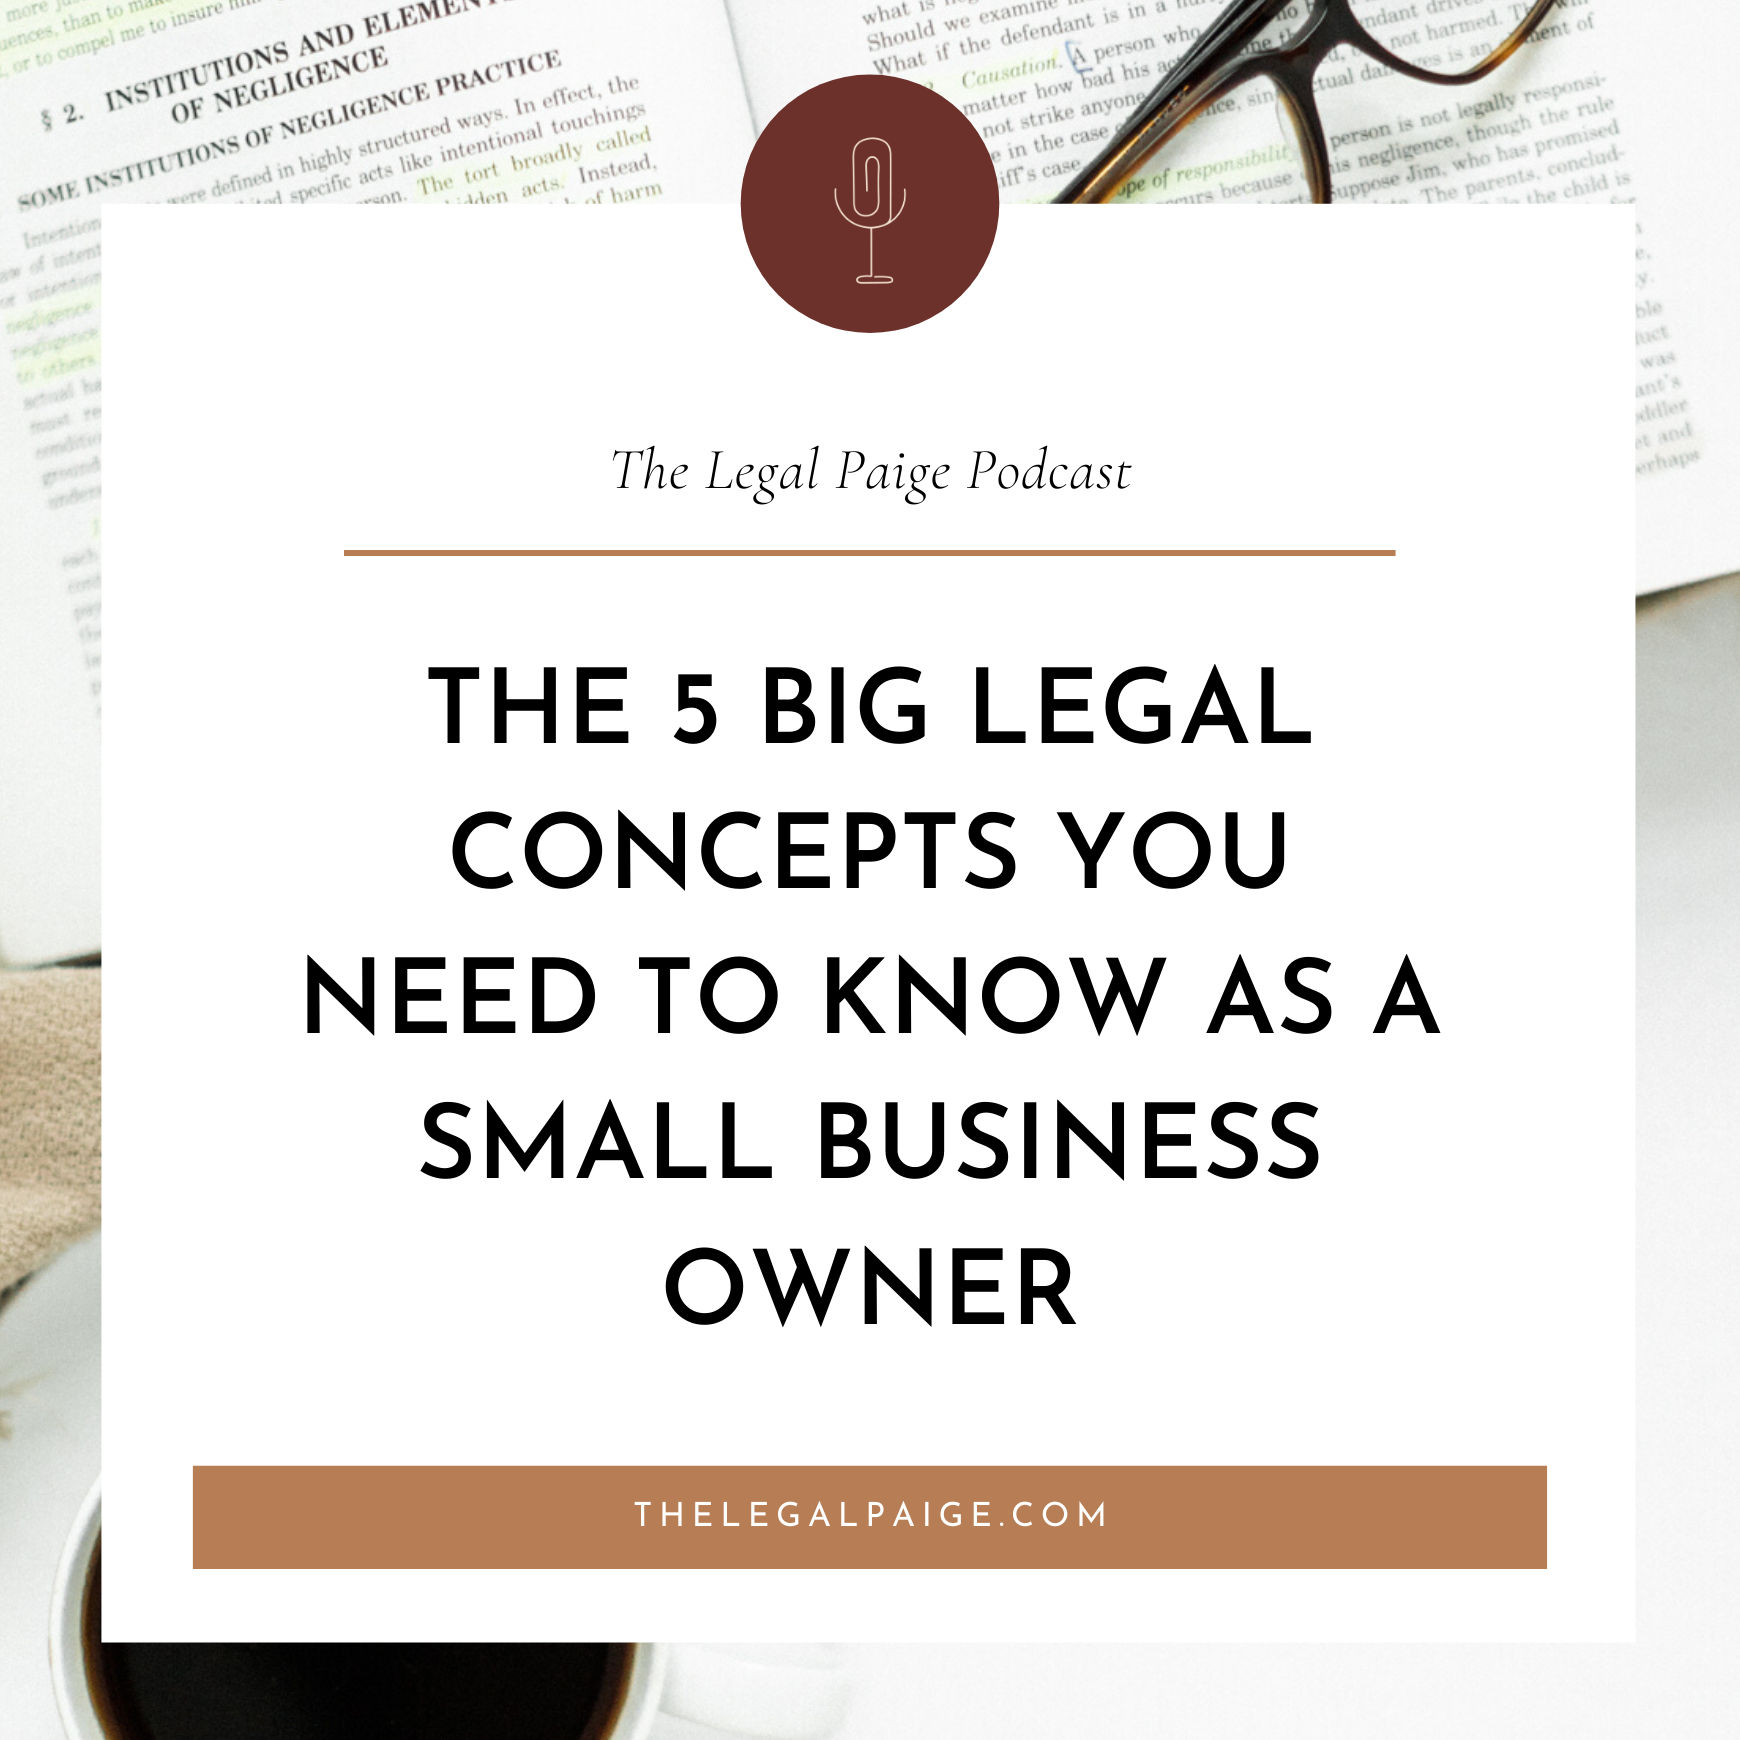 The 5 big legal concepts you need to know as a small business owner